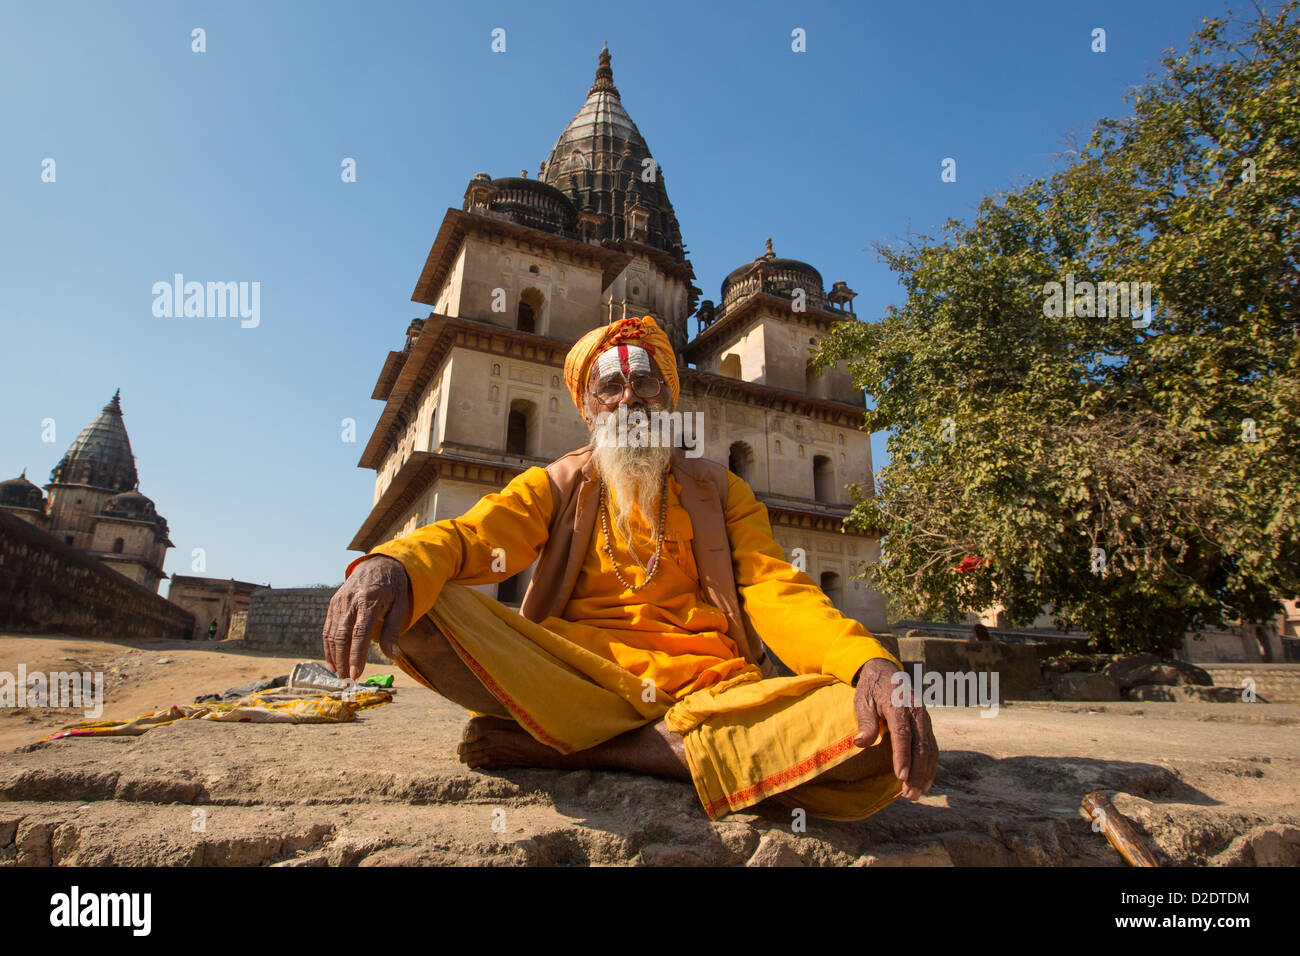 Sadhu in front of Chhatris to Orchha rulers, Orchha, India - Stock Image